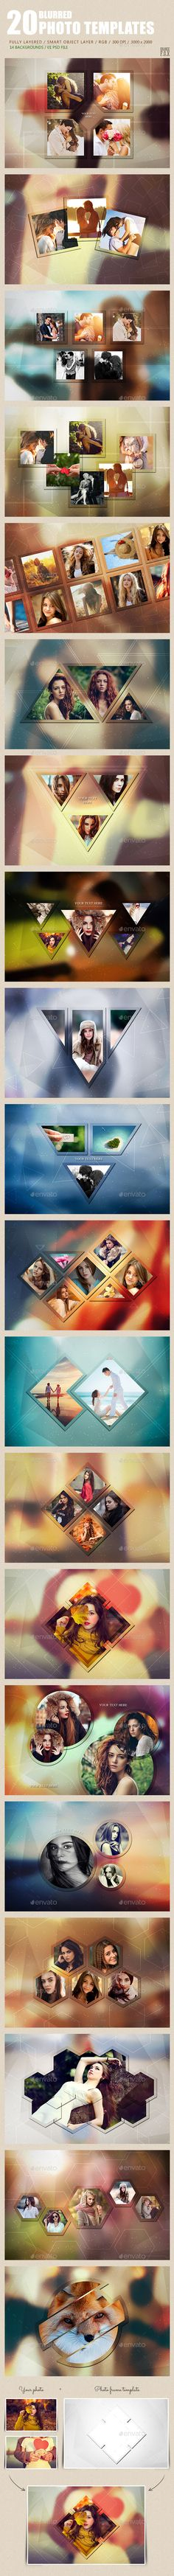 20 Blurred Photo Templates #photography #psd Download: http://graphicriver.net/item/20-blurred-photo-templates/12649082?ref=ksioks